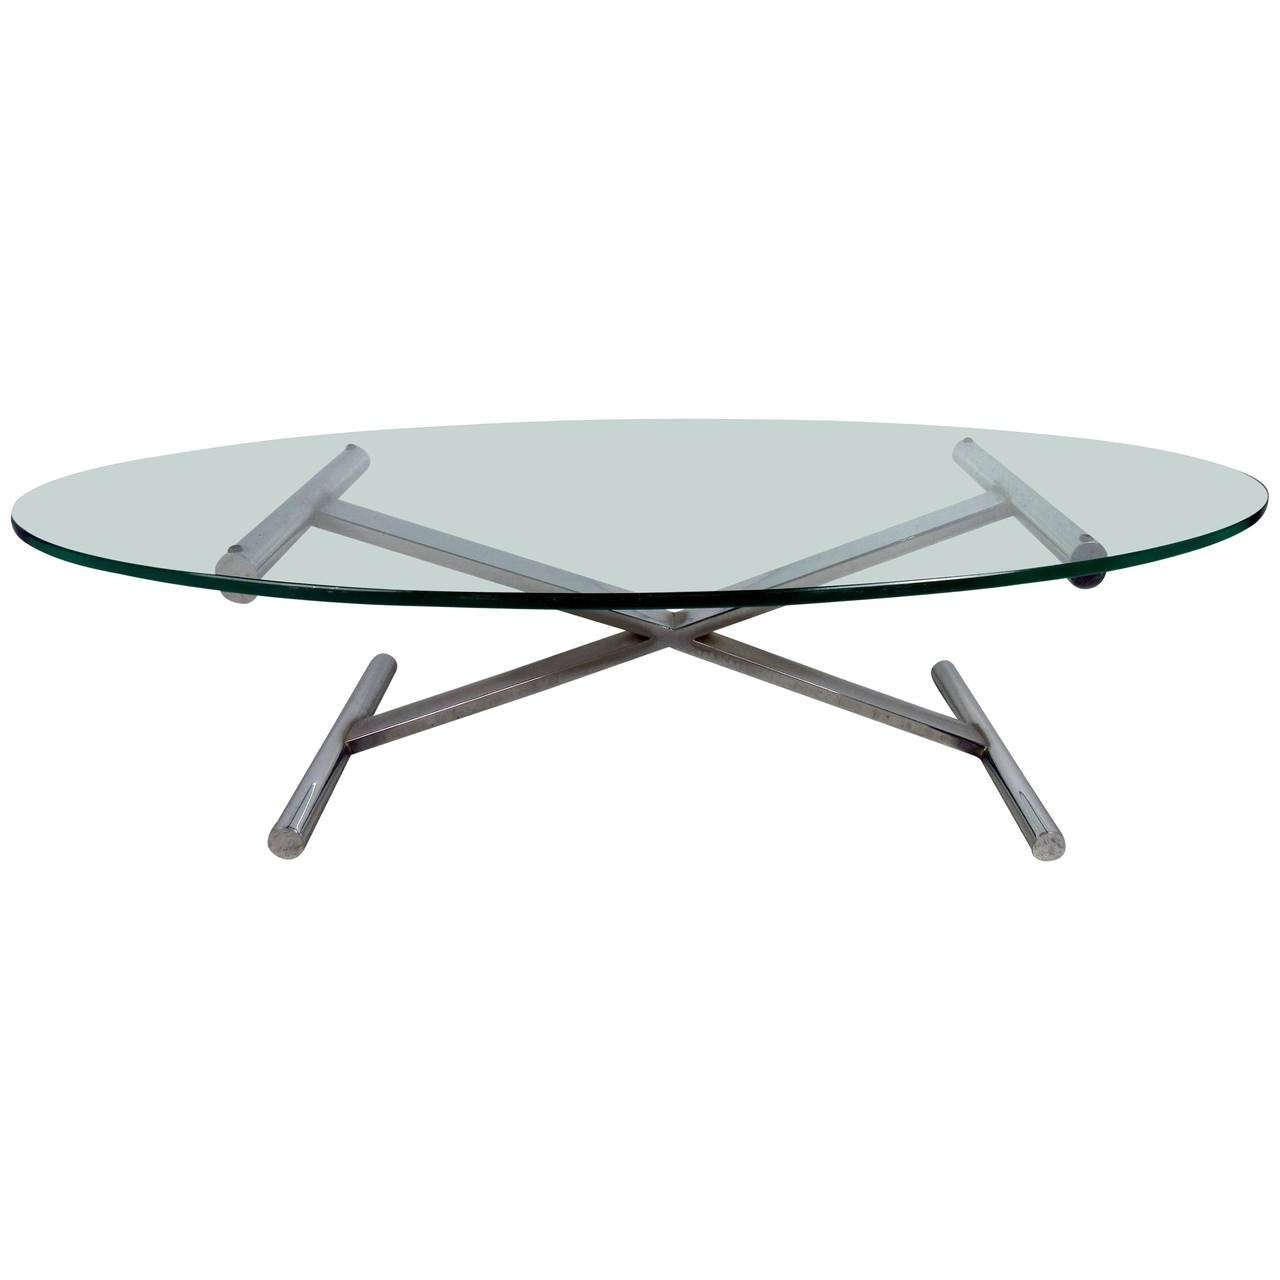 Newest Oval Shaped Glass Coffee Tables Regarding Oval Shaped Glass Top Coffee Table With Chrome Base For Sale At (View 8 of 20)